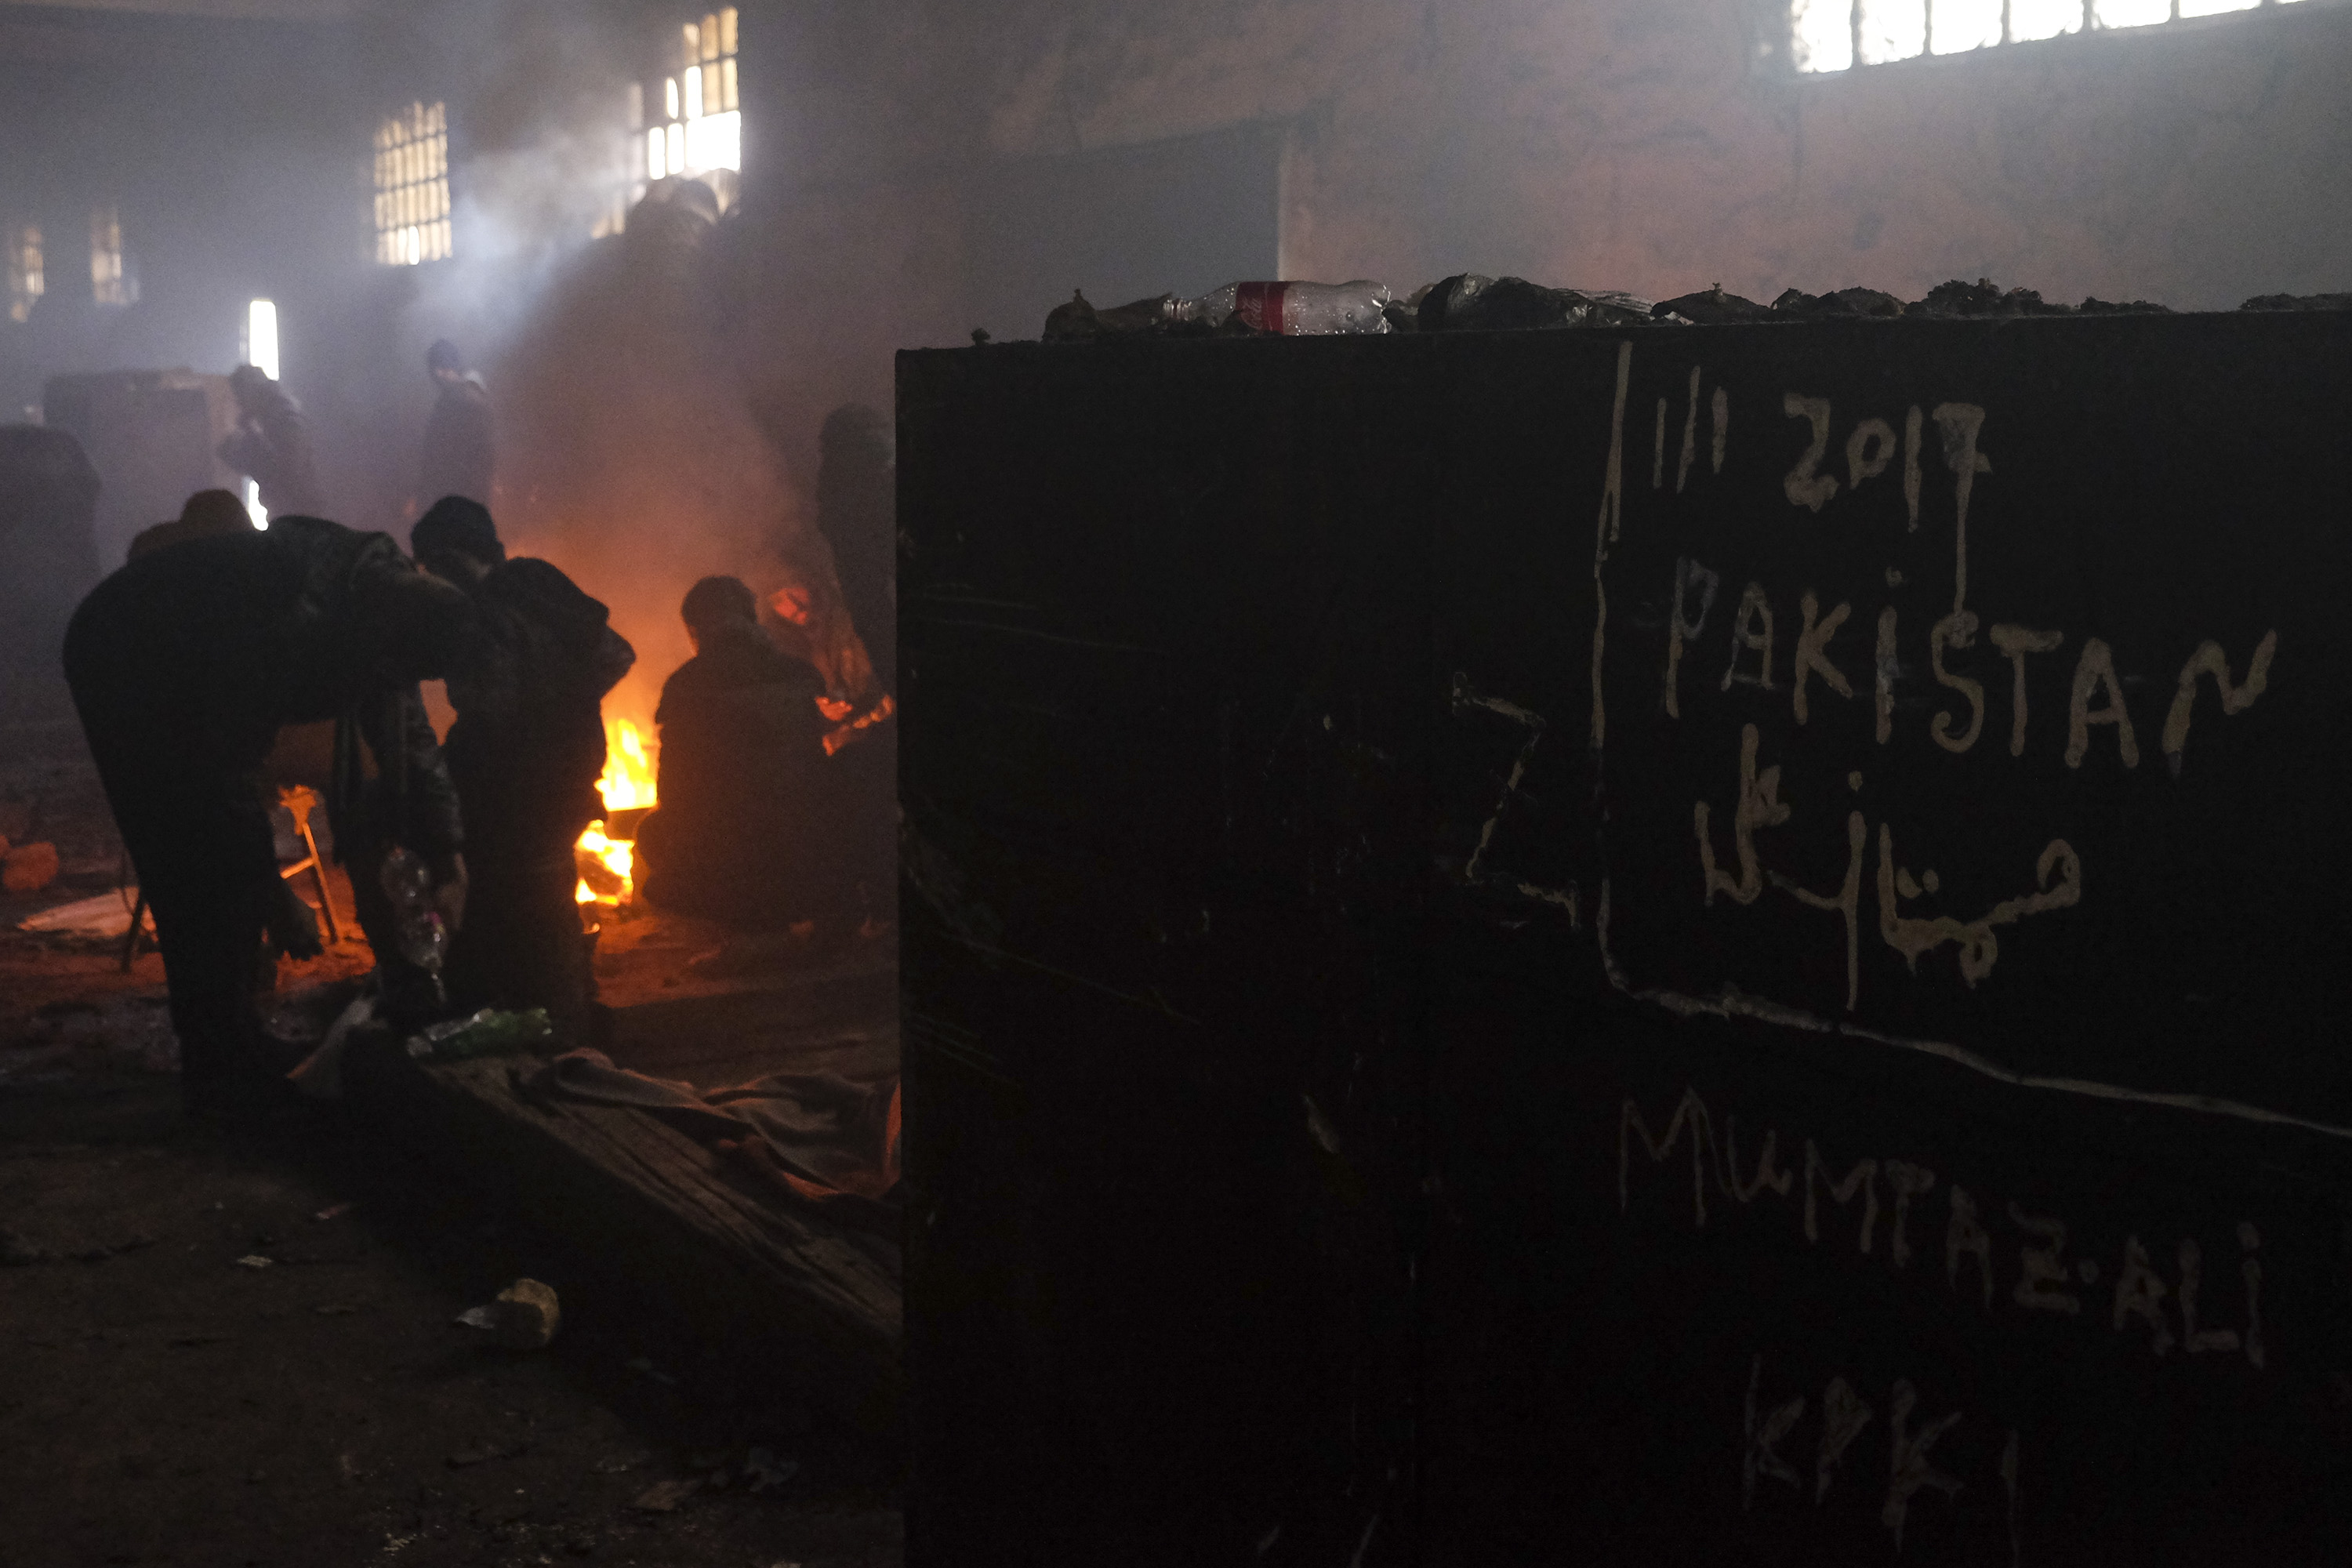 More than 1500 people are living in bleak conditions in one of the warehouses near the train station, Jan. 17, 2017 in Belgrade, Serbia.